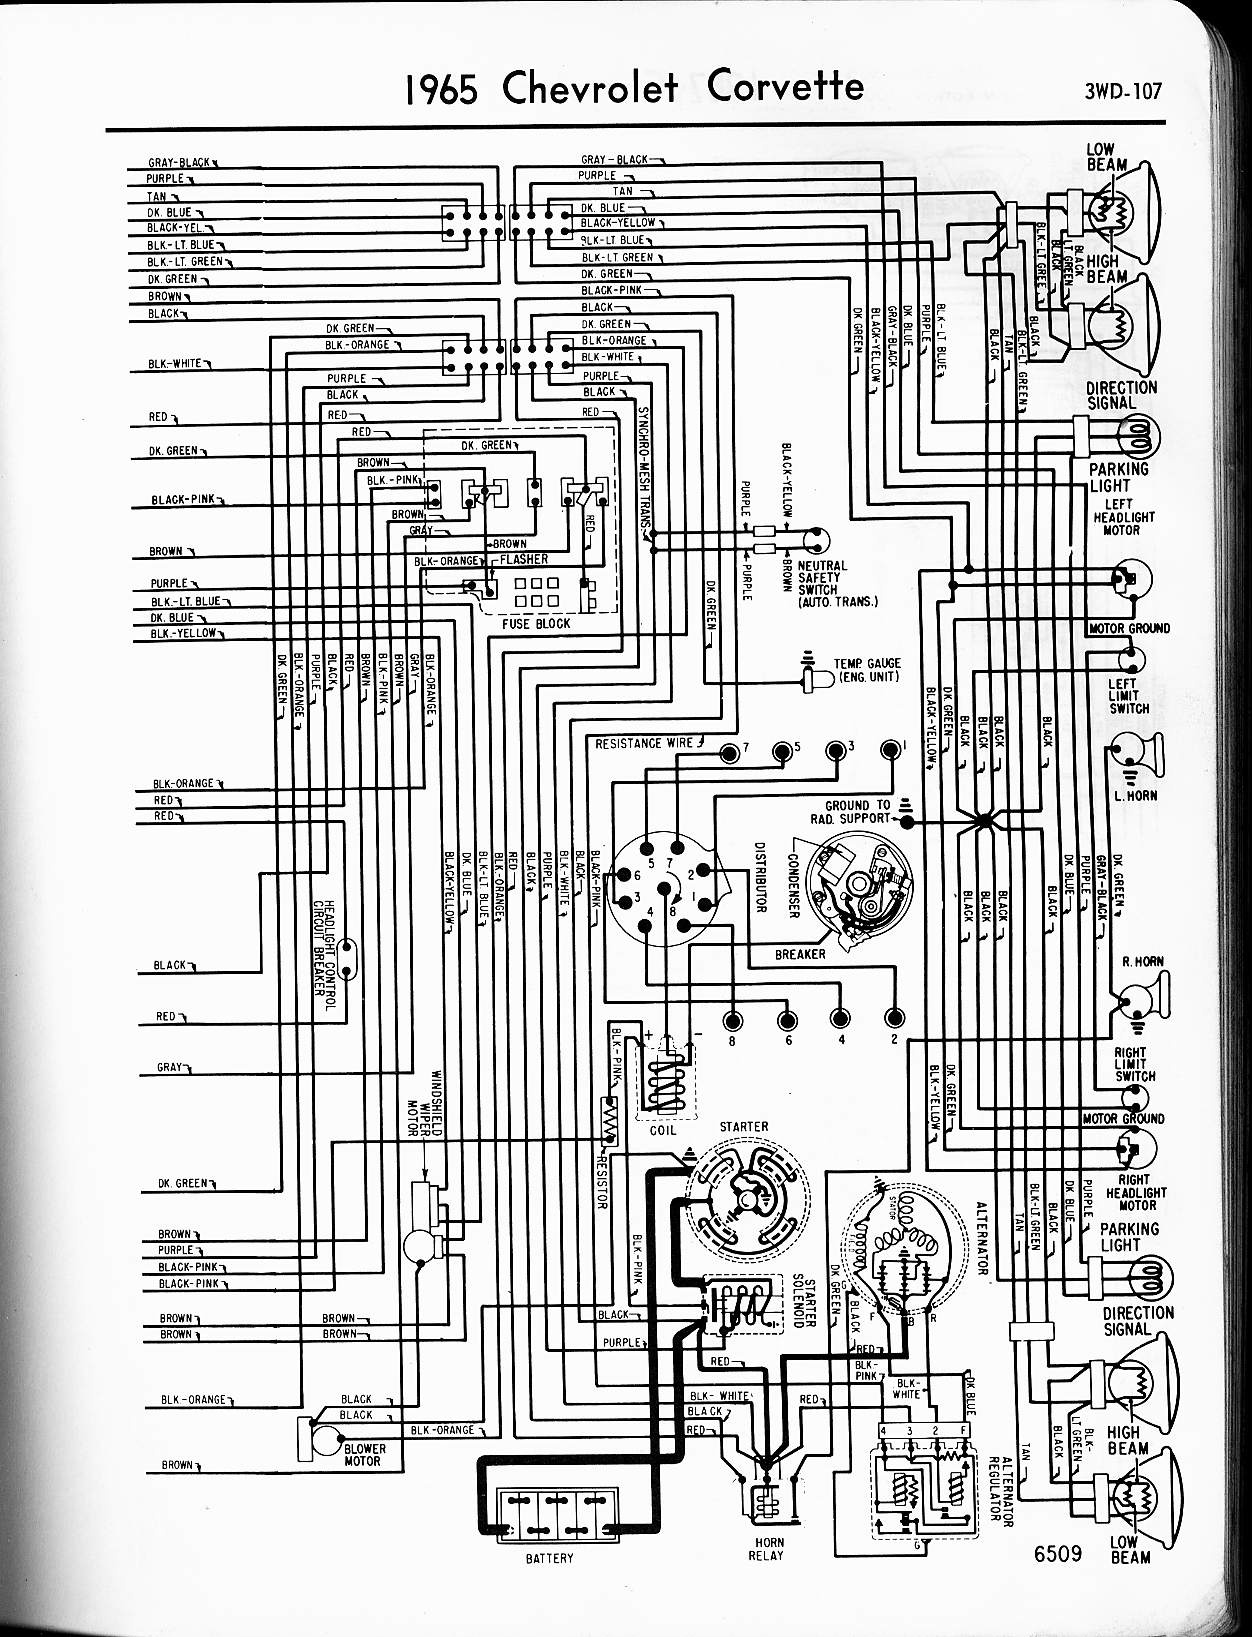 65 gmc truck wiring diagram wiring diagram 1972 corvette the wiring diagram 74 corvette wiring diagram for alternator 74 printable wiring 1965 chevy truck